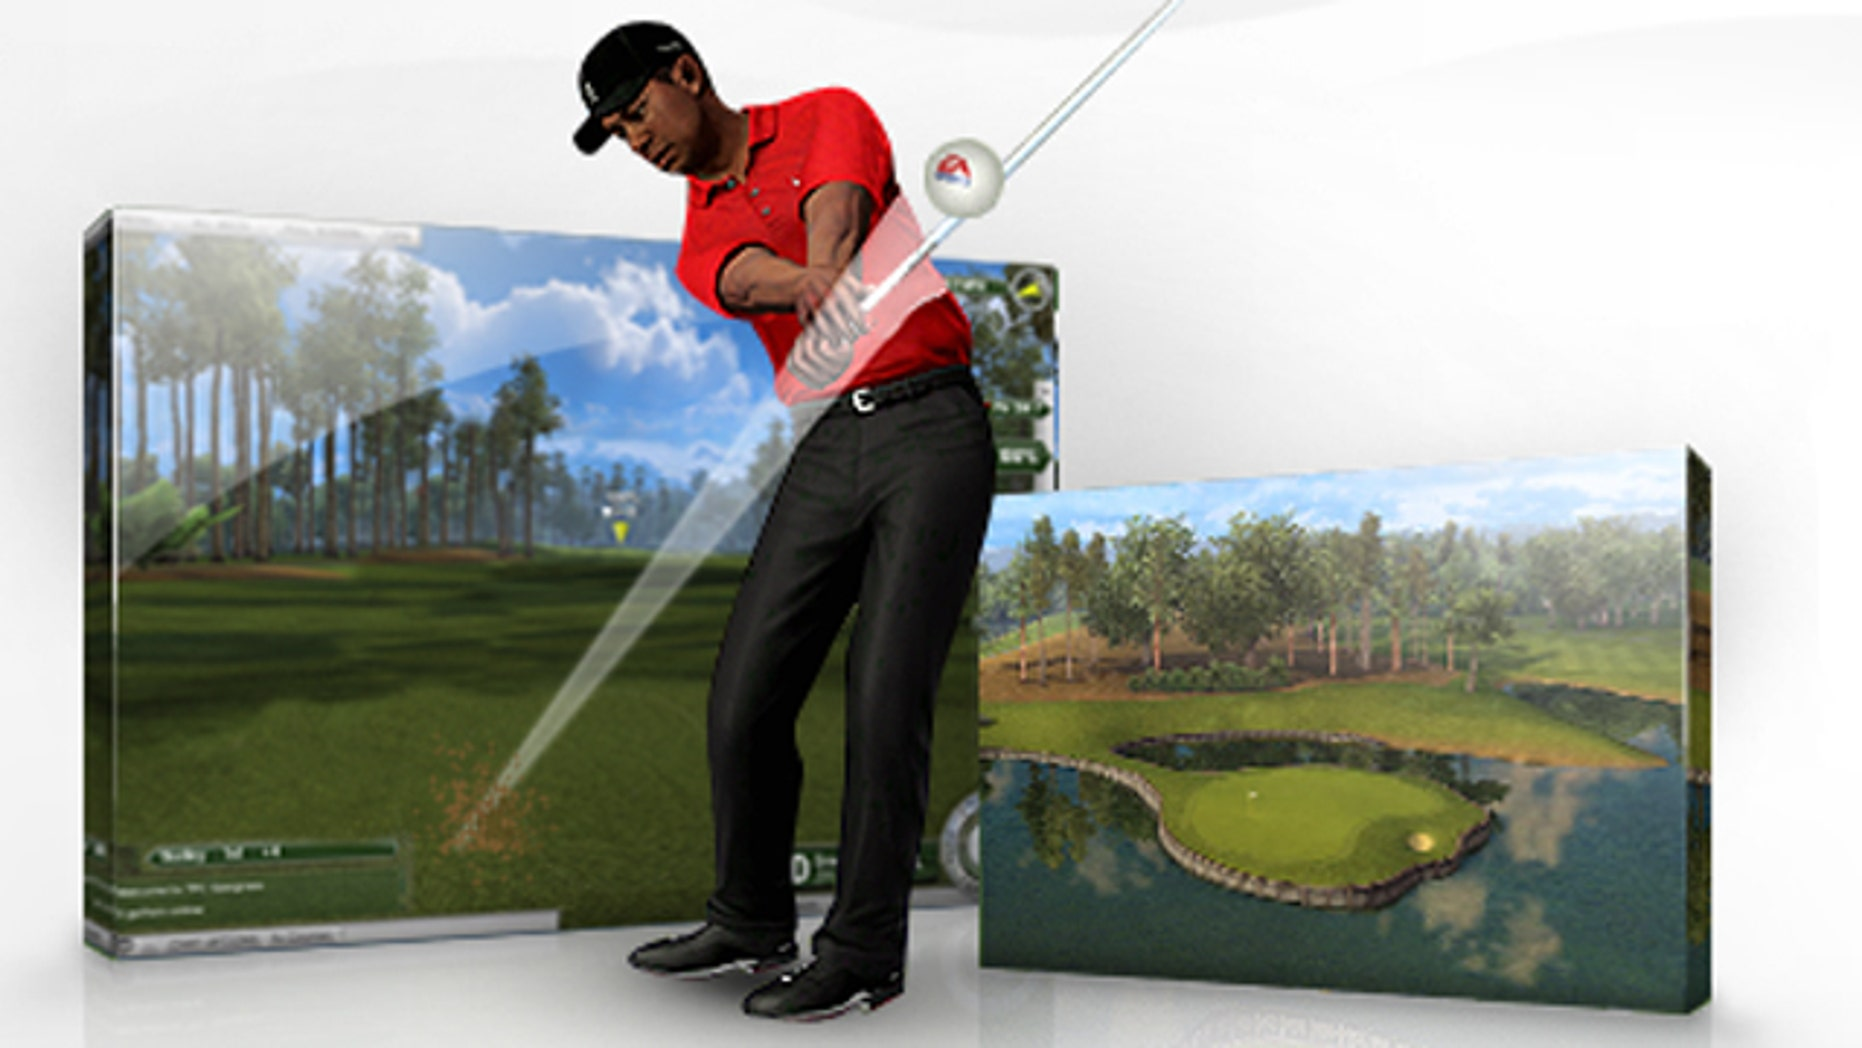 EA Sports It's In the Game blog confirms that the video game giant will move ahead with an online golf game starring Tiger Woods.